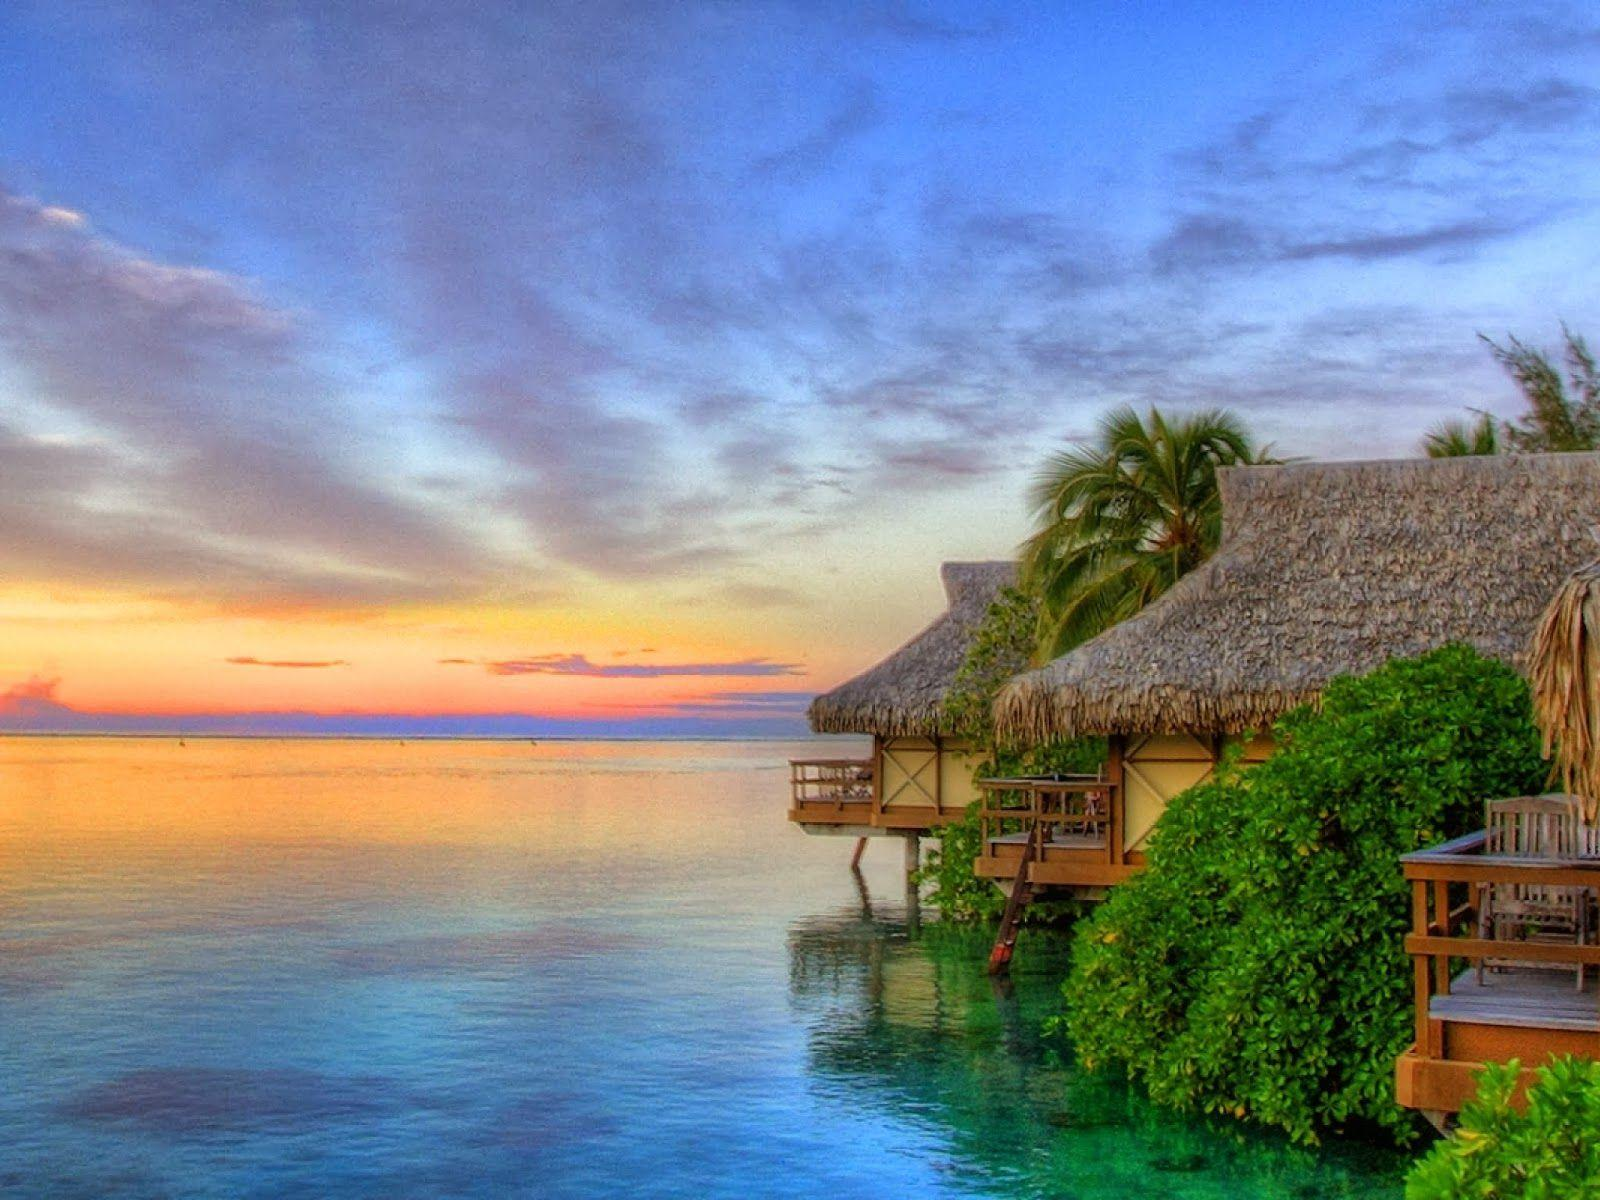 Exotic Beach Wallpaper 4992 HD Wallpapers | wallpaperenew.